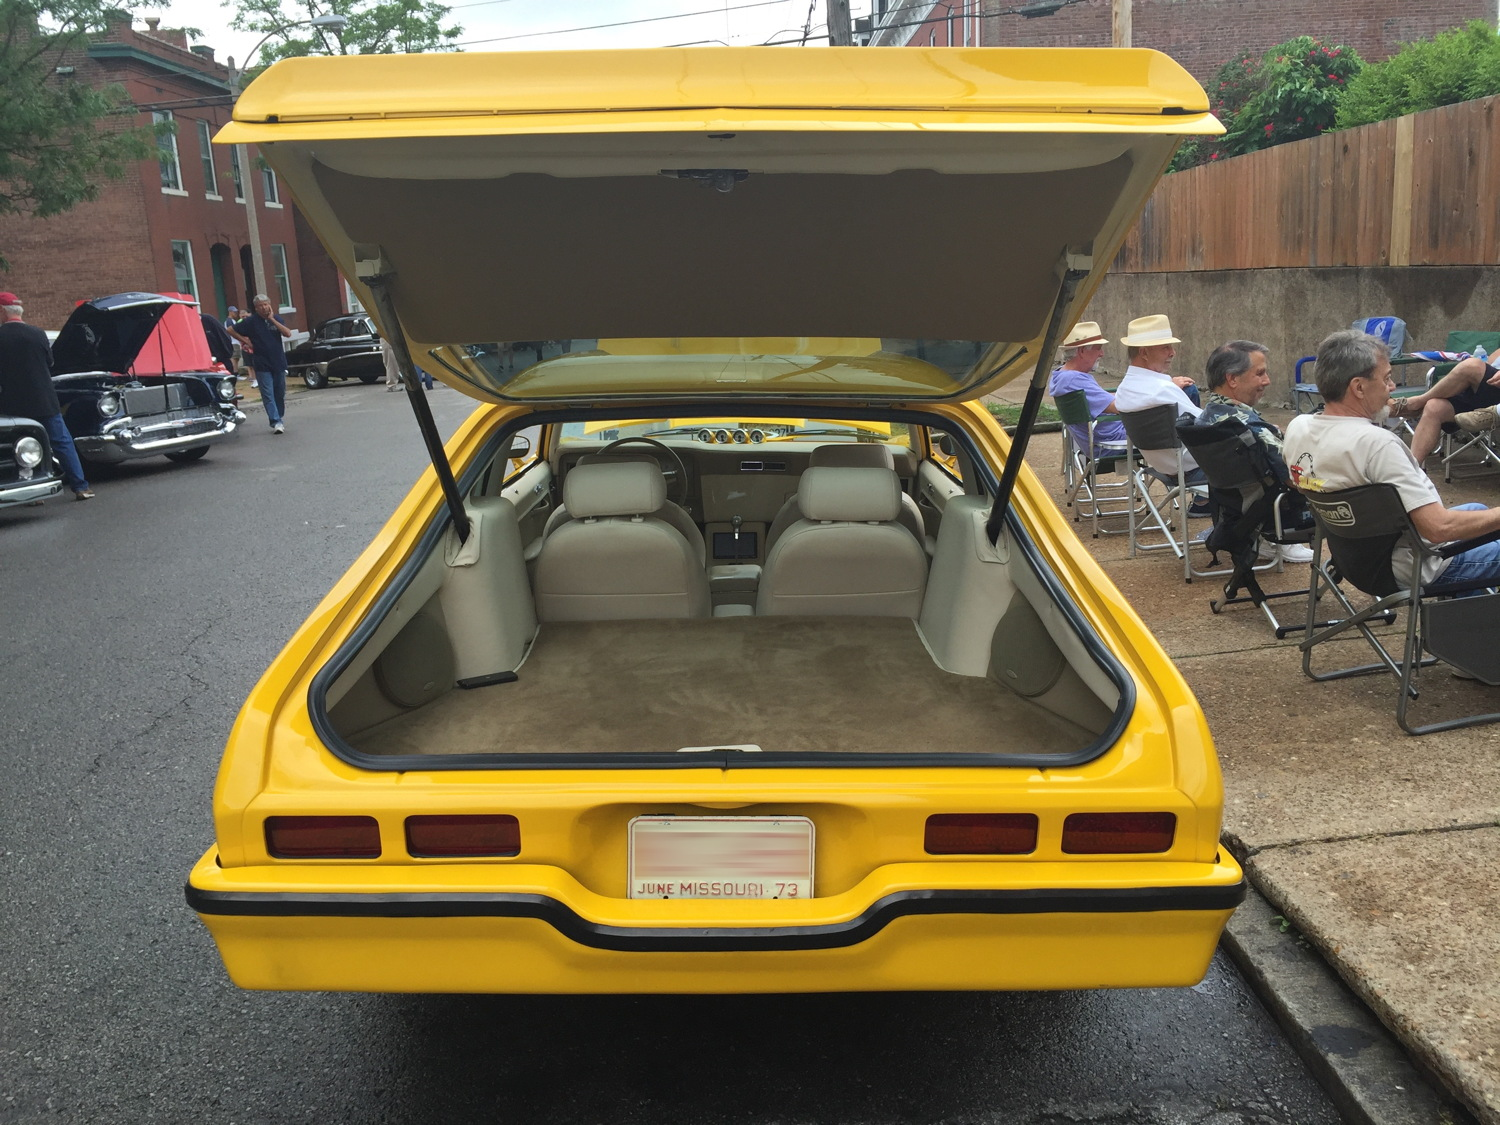 1973 Chevrolet Nova Hatchback Interior with custom stereo, carpeted cargo compartment and four custom bucket seats.